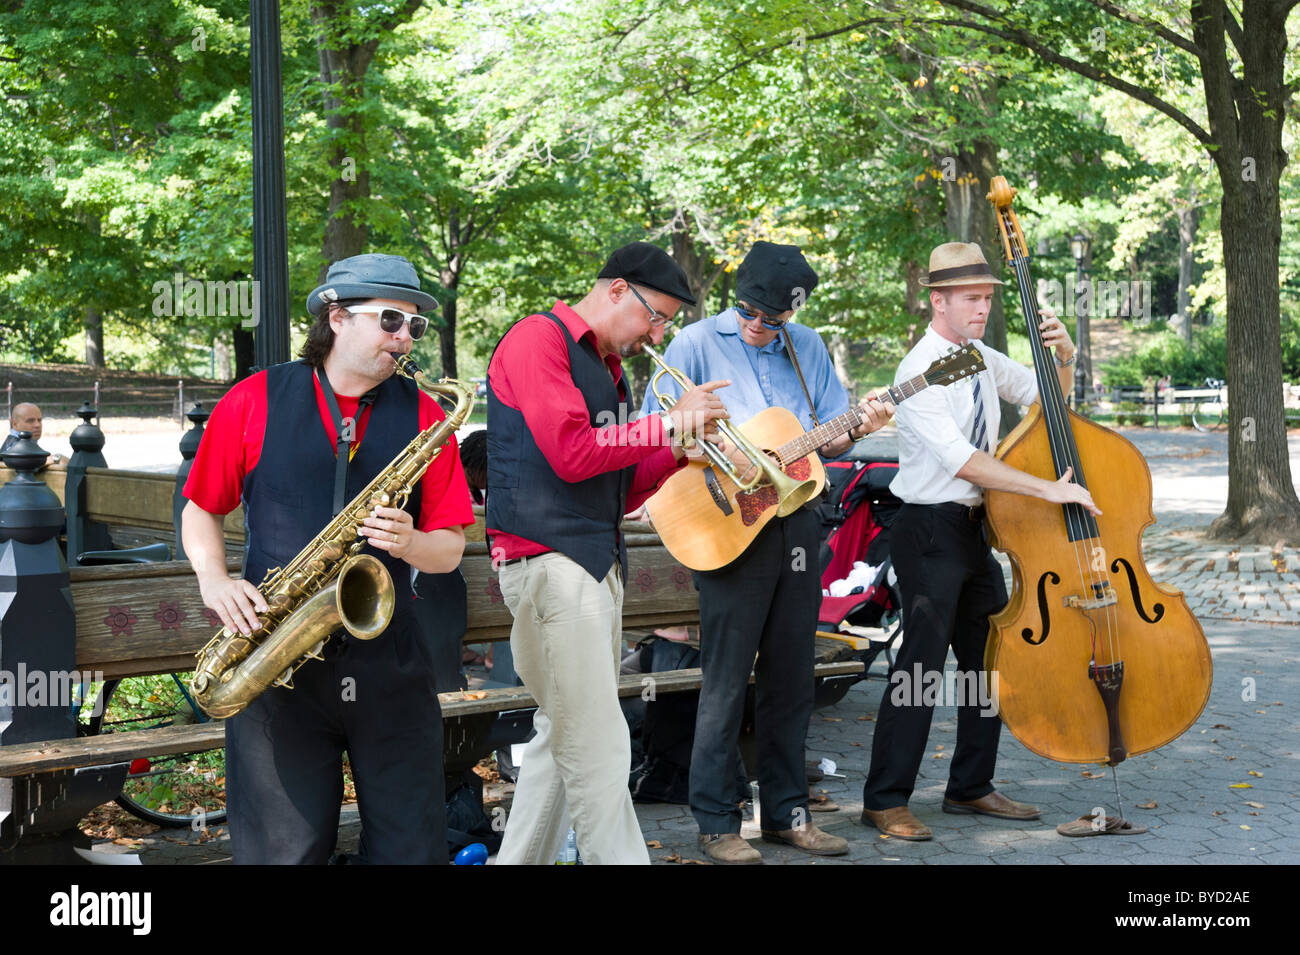 Buskers in Central Park, New York City, USA - Stock Image